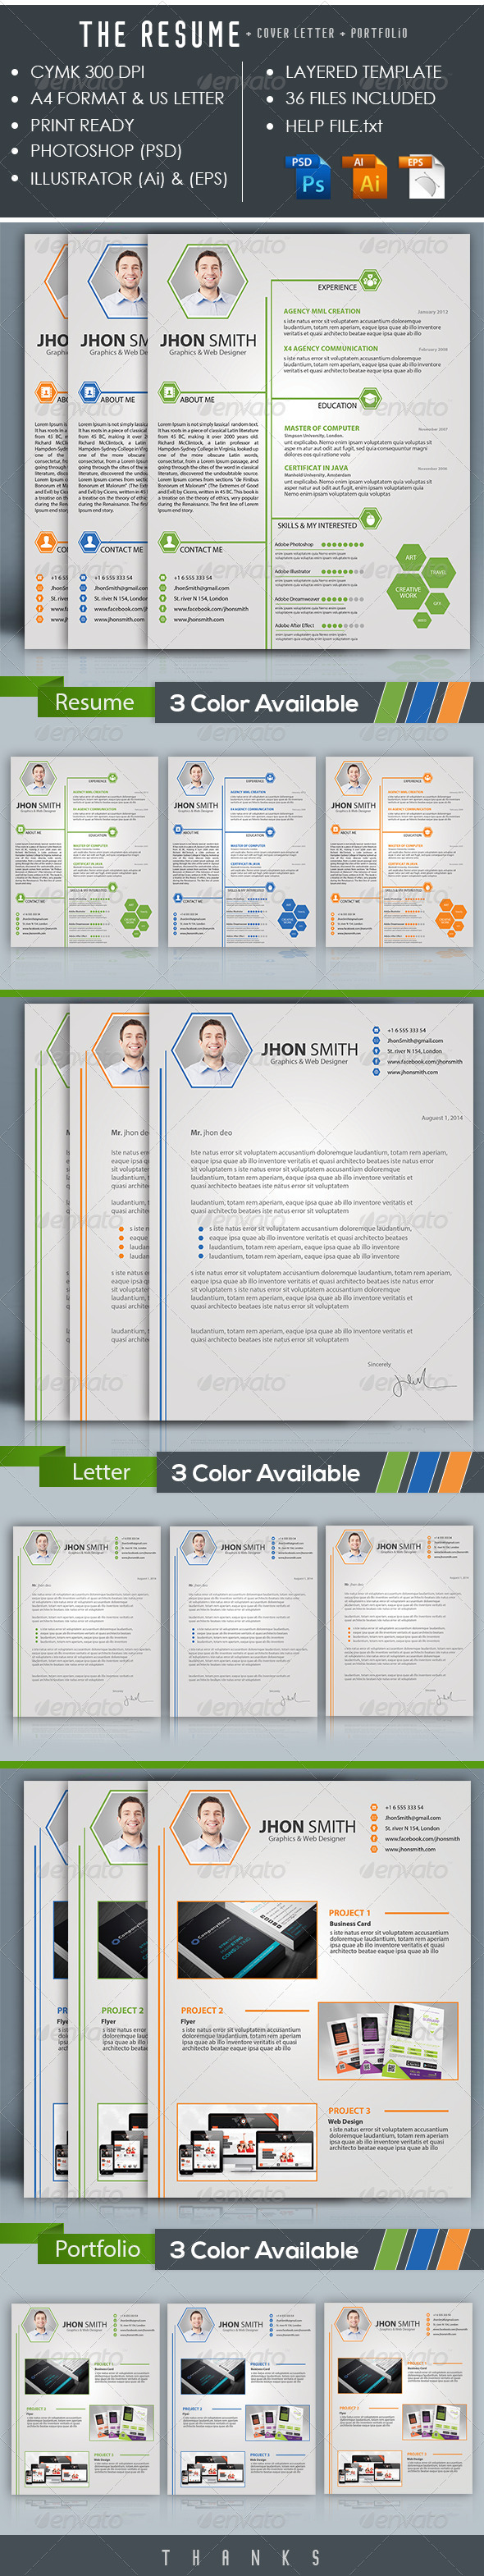 GraphicRiver The Resume & Letter Cover & Portfolio 8615777